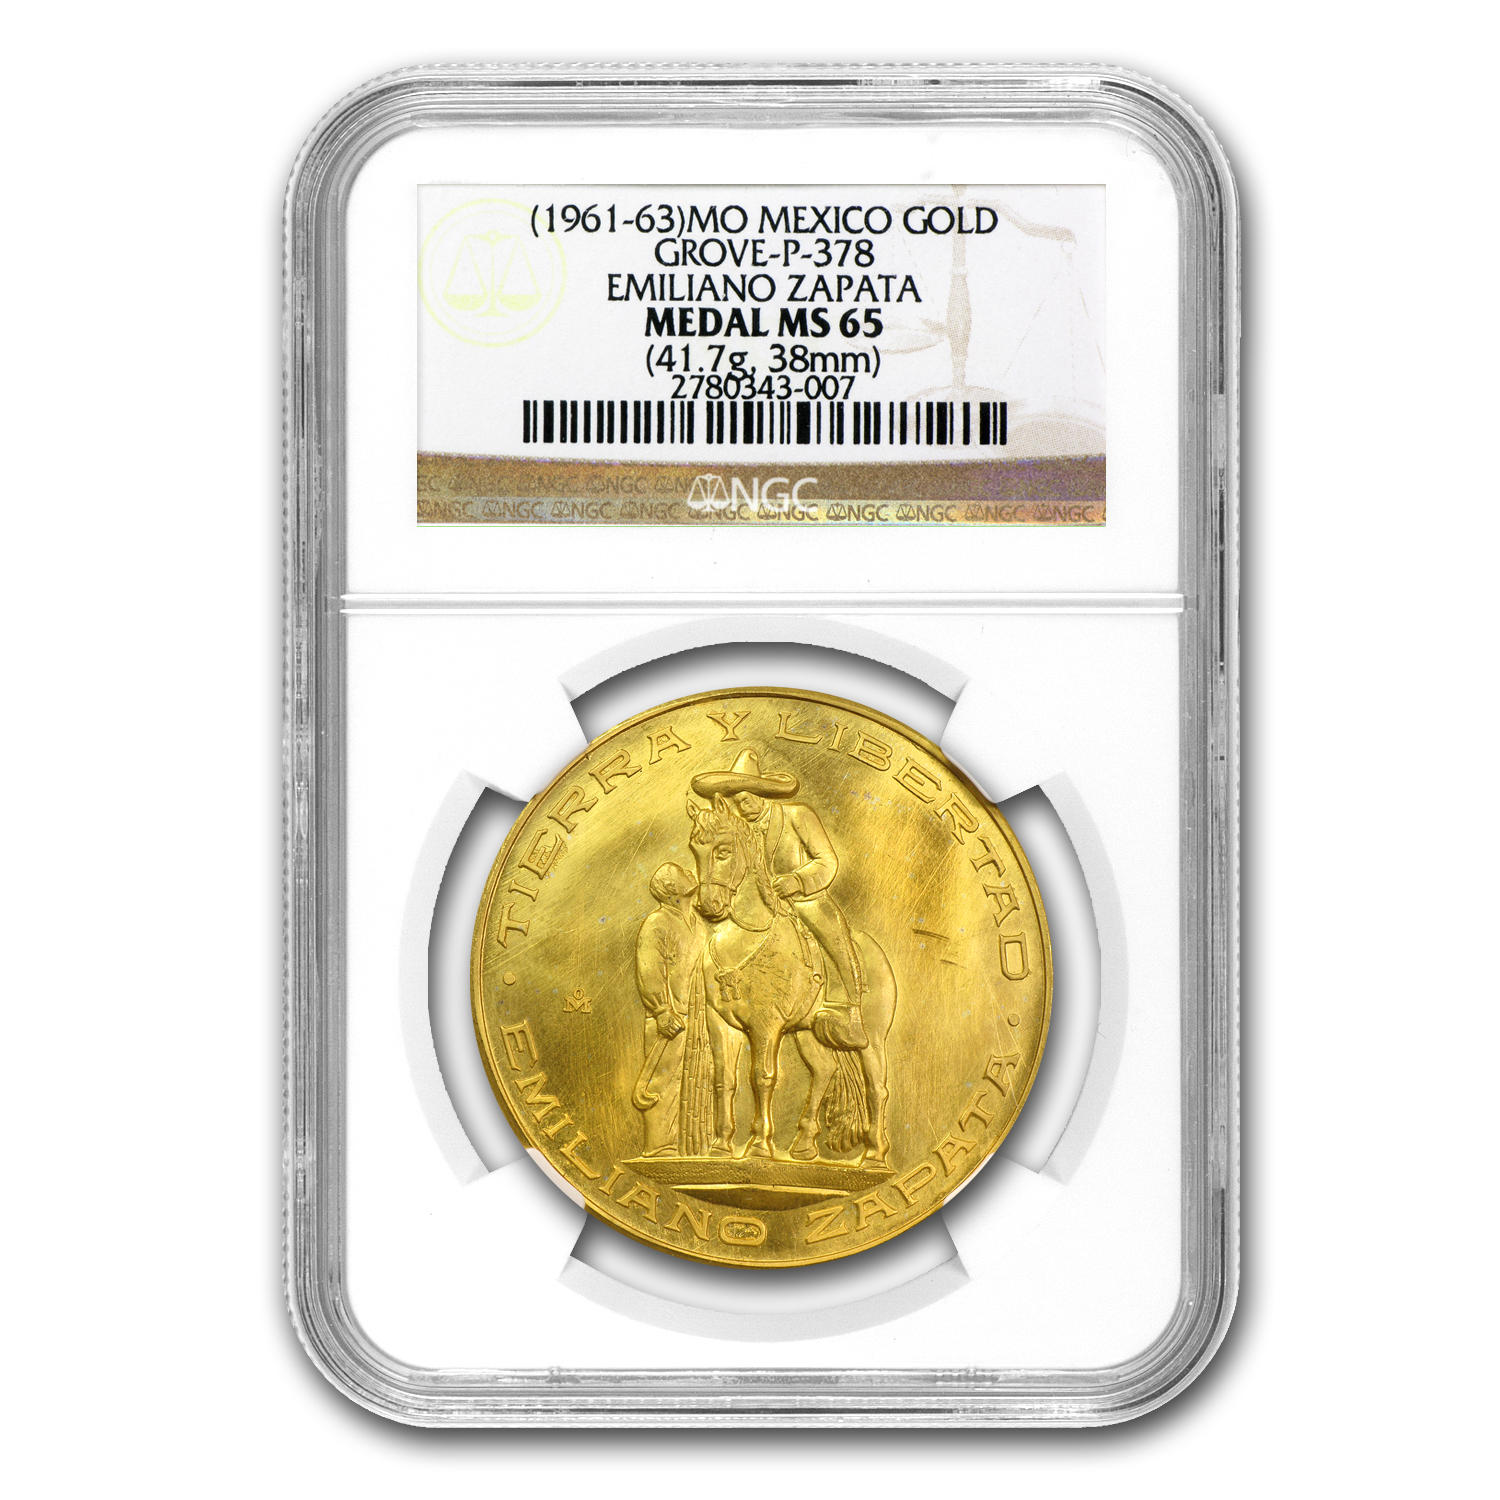 (1961-63) Mexico Gold Grove-378 Emiliano Zapata Medal NGC MS-65